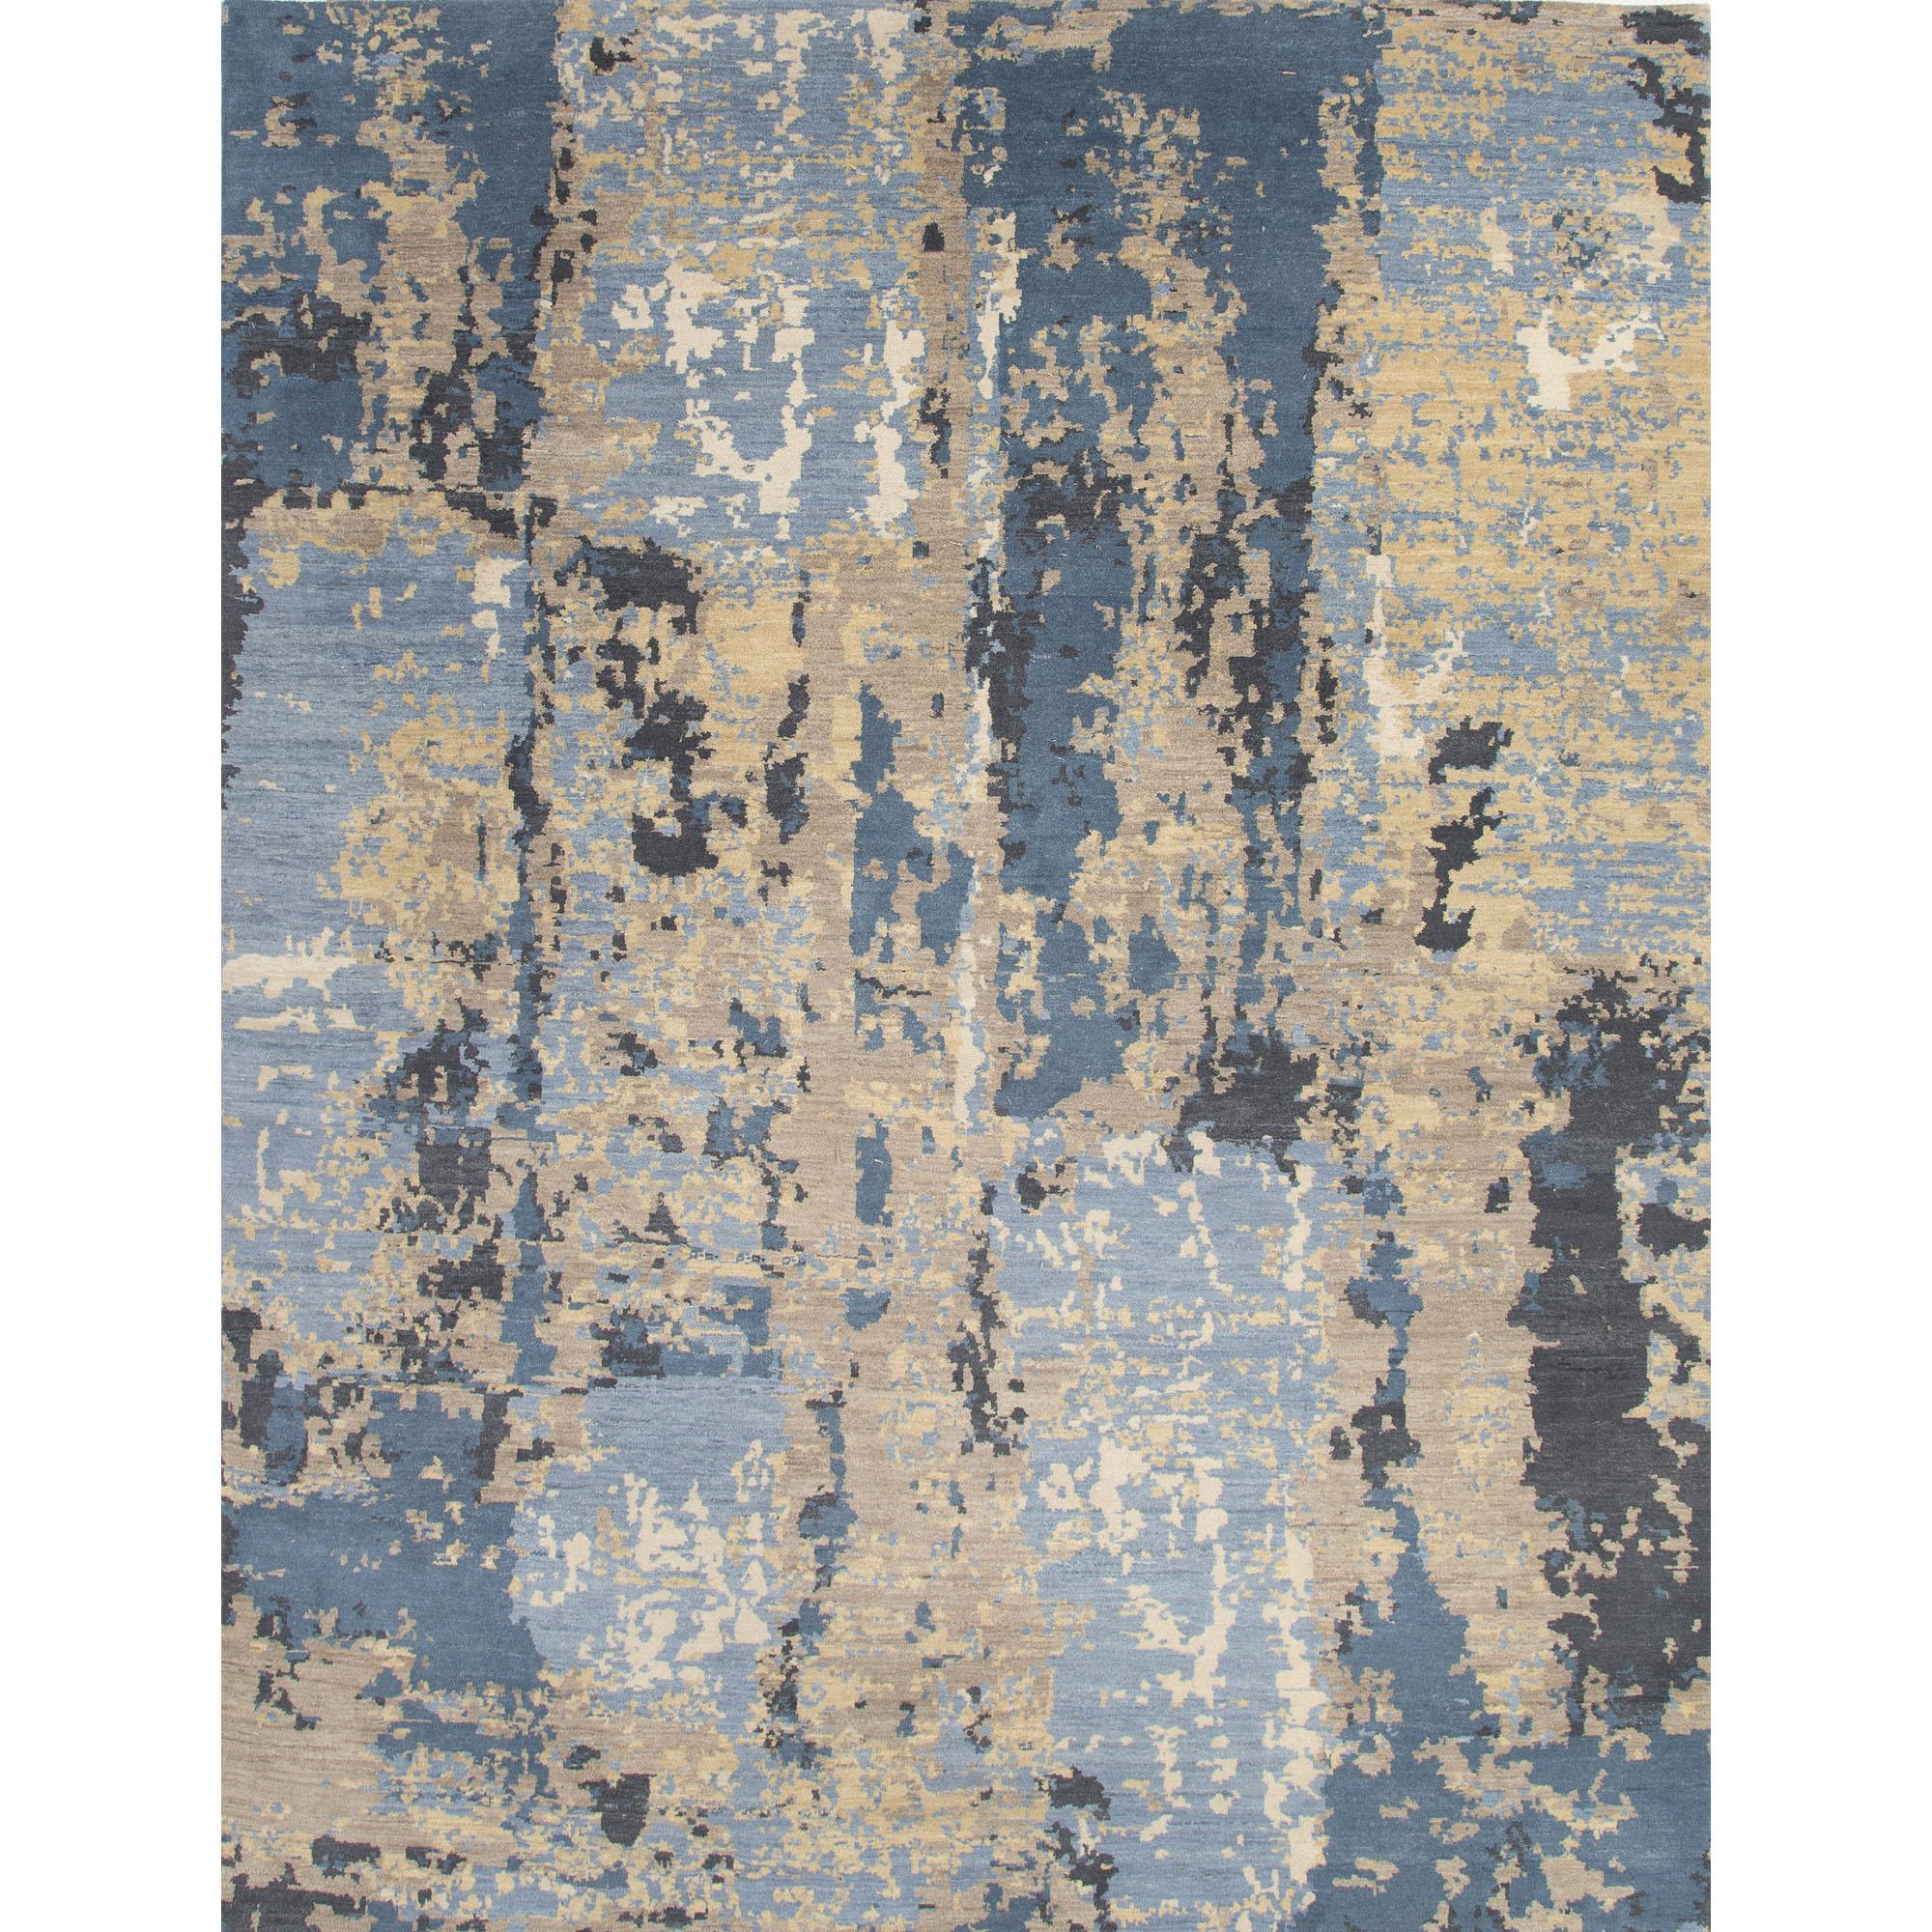 Connextion By Jenny Jones-global 10 x 14 Rug by JAIPUR Living at Malouf Furniture Co.